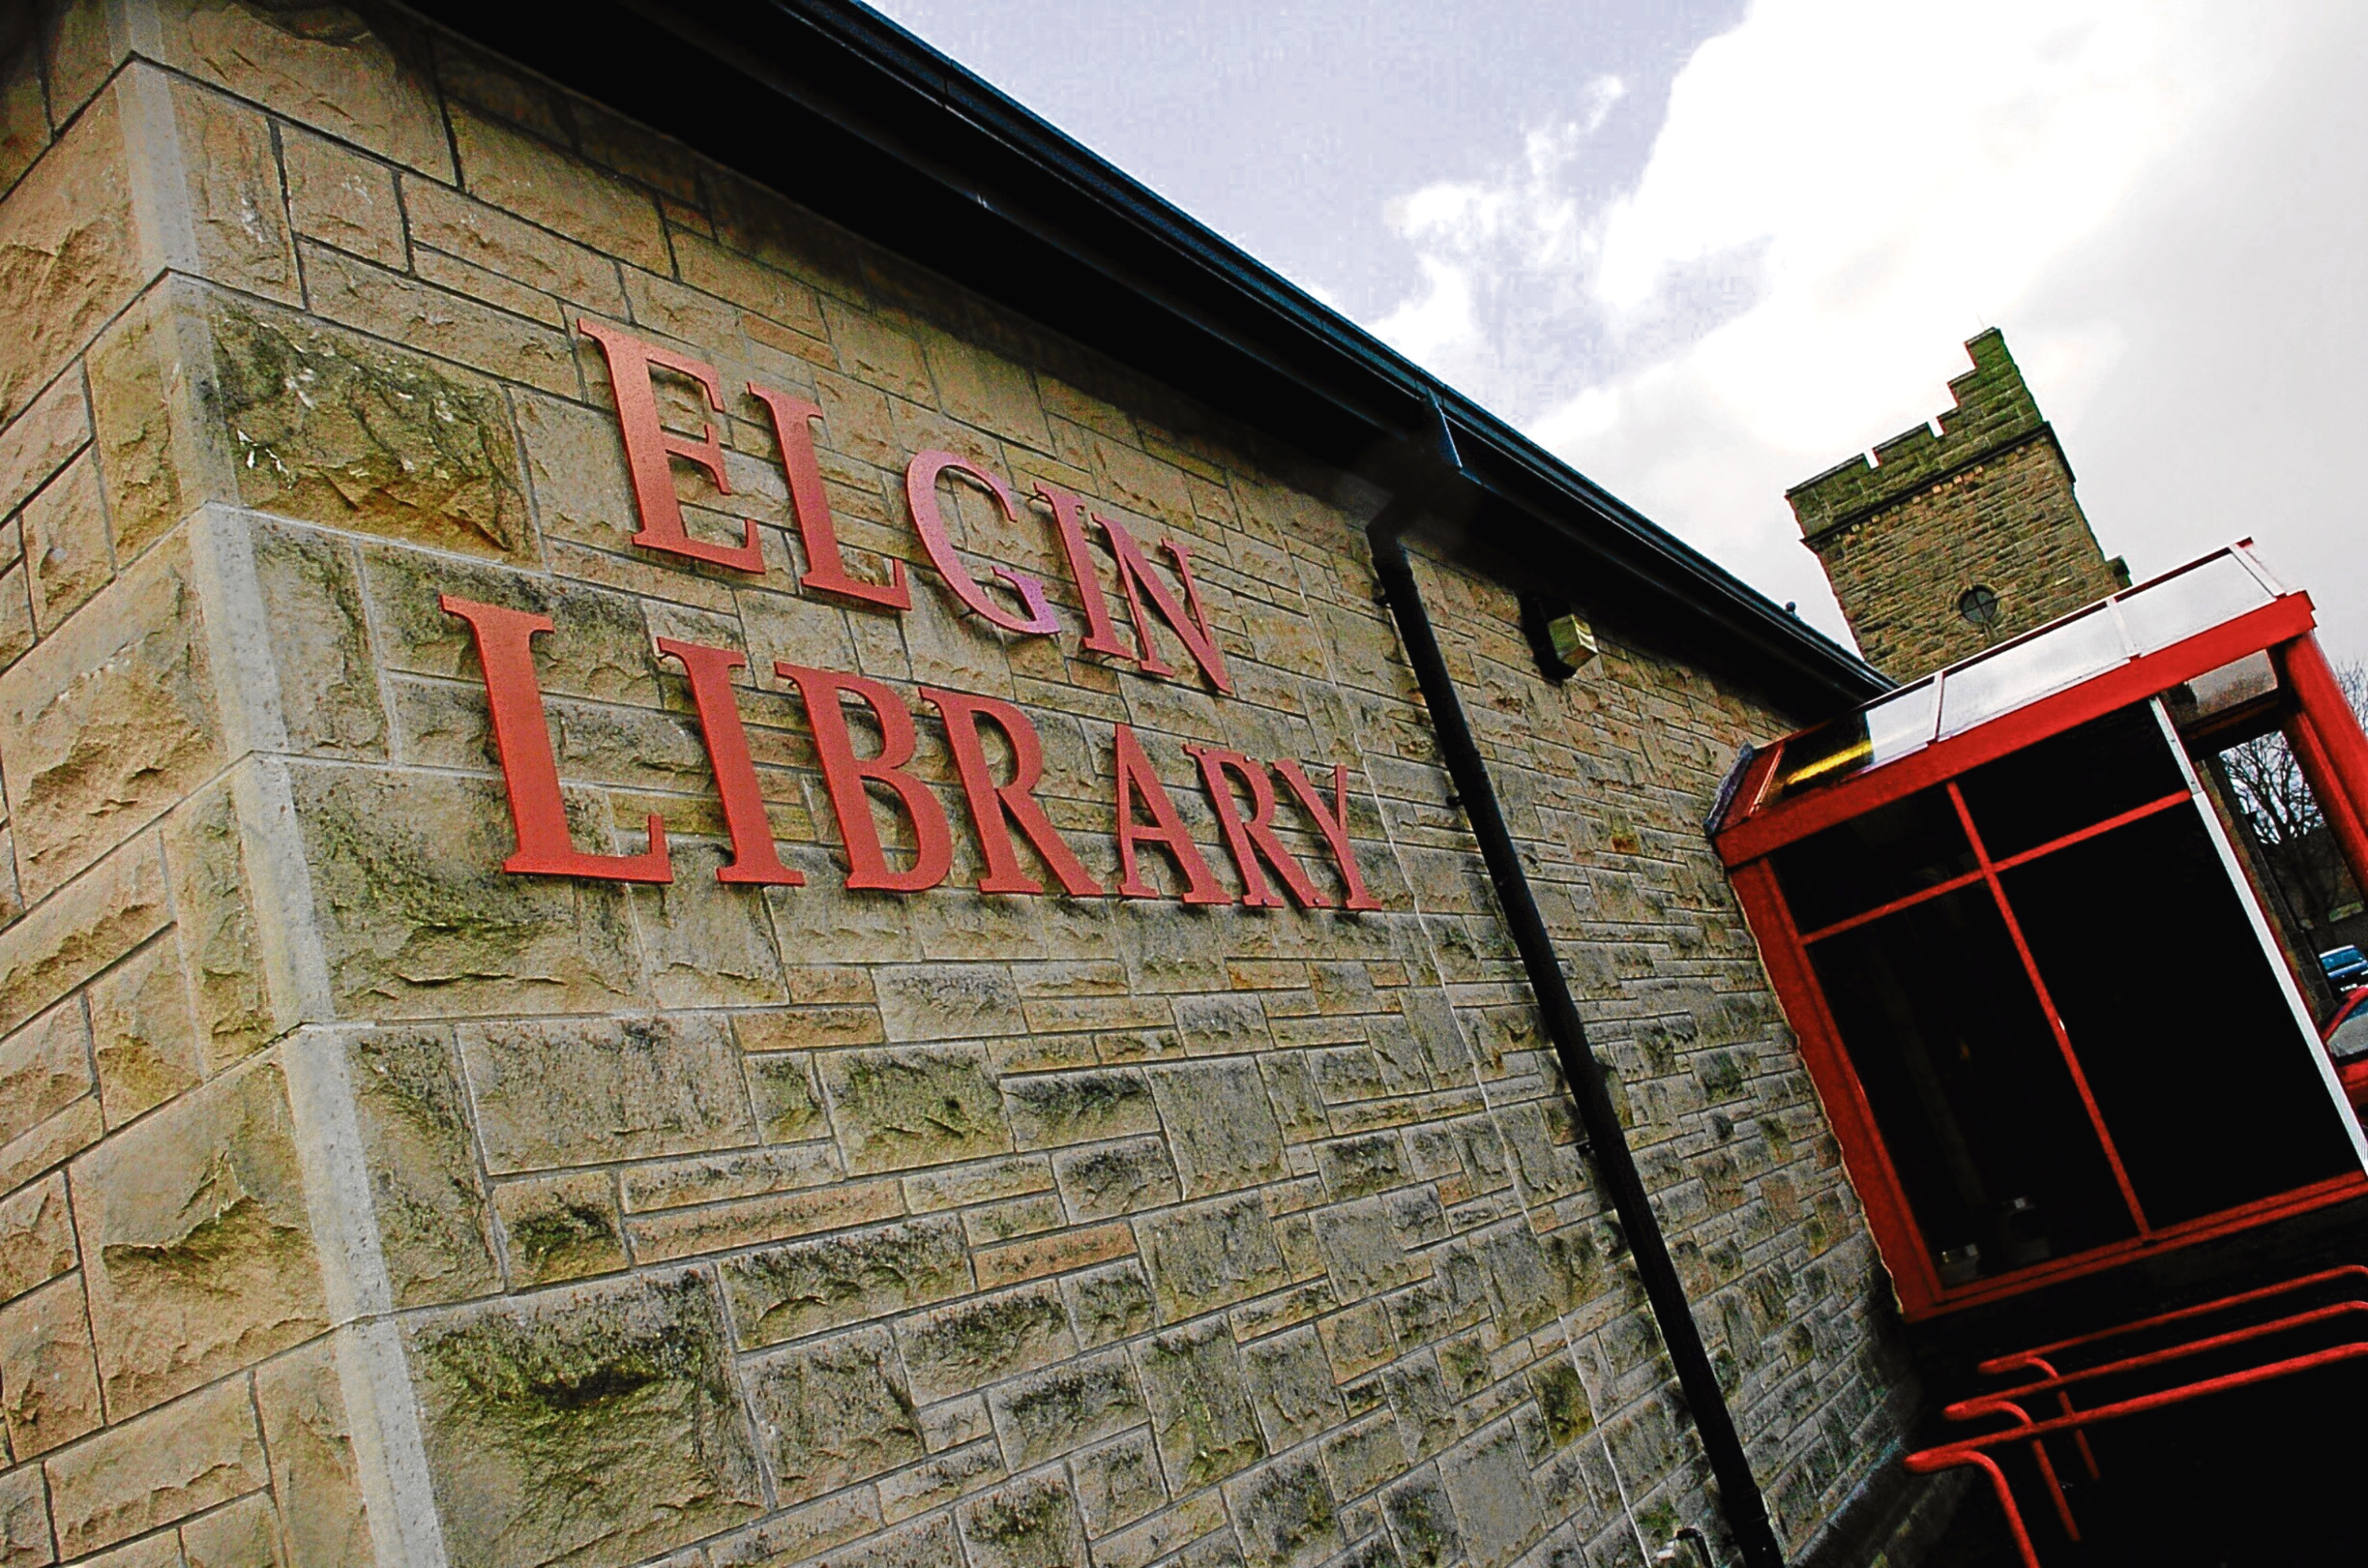 The talk will take place at Elgin Lbrary